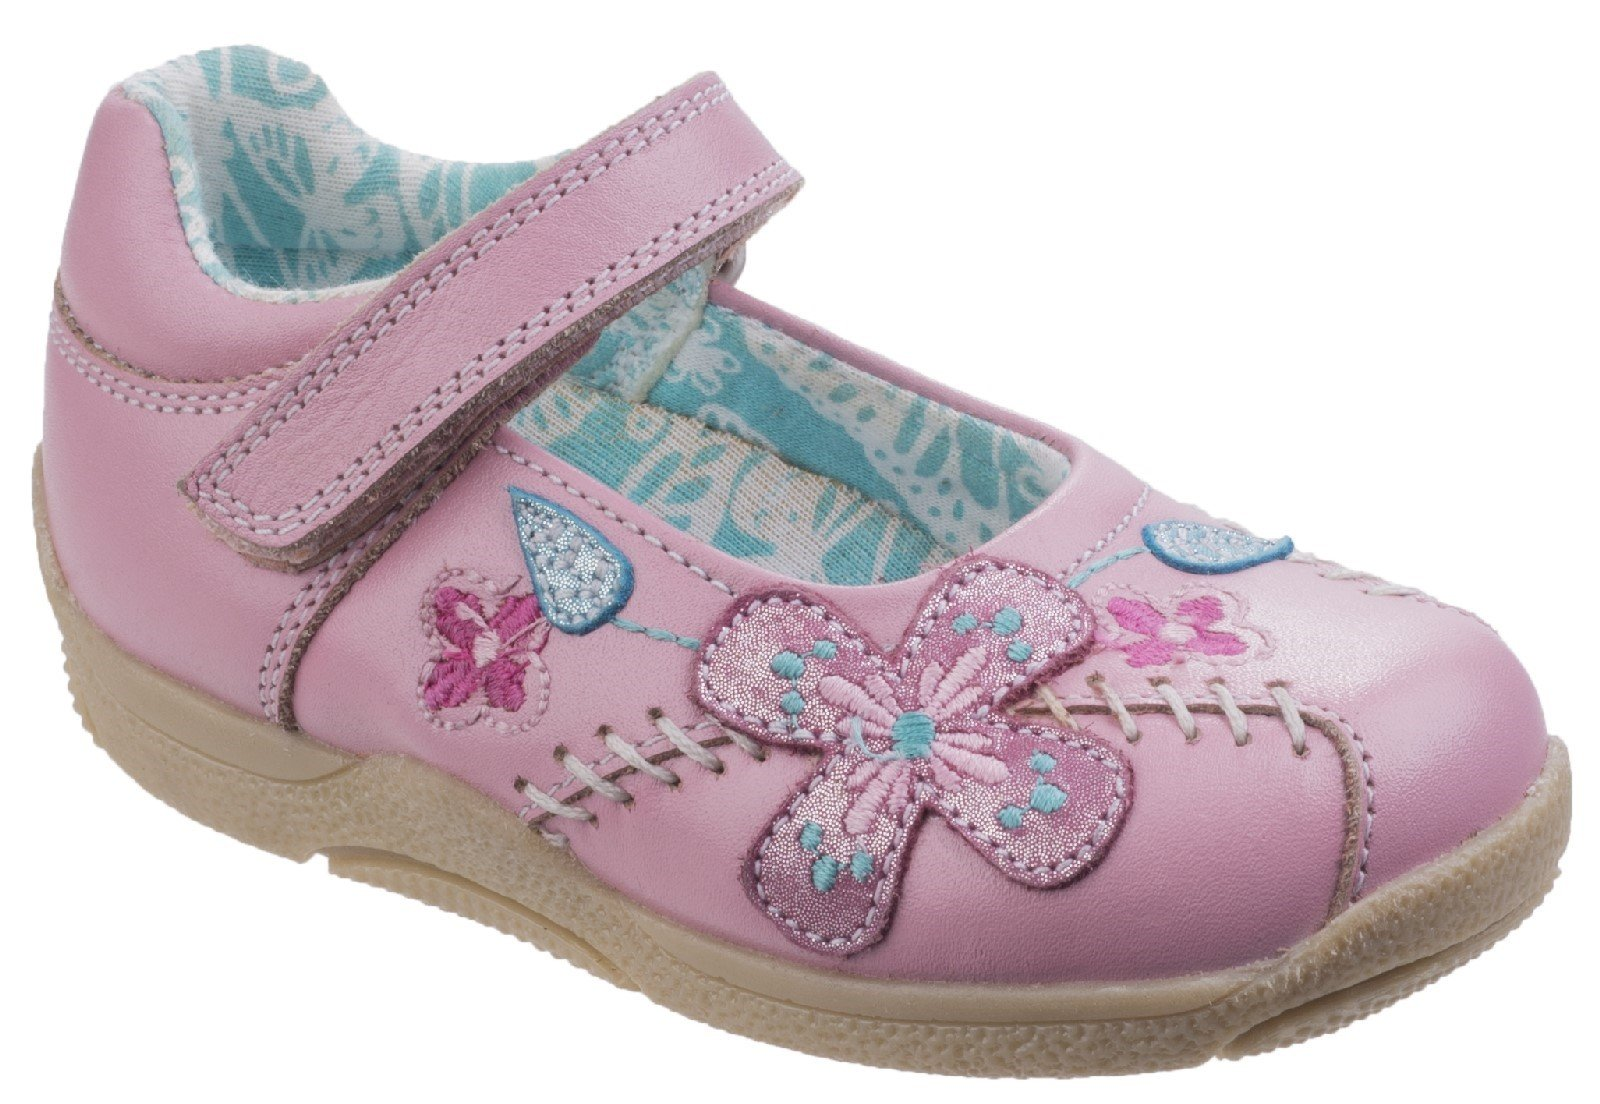 Hush Puppies Women's Millie Touch Fastening Sandal Various Colours 26395 - Pink 4